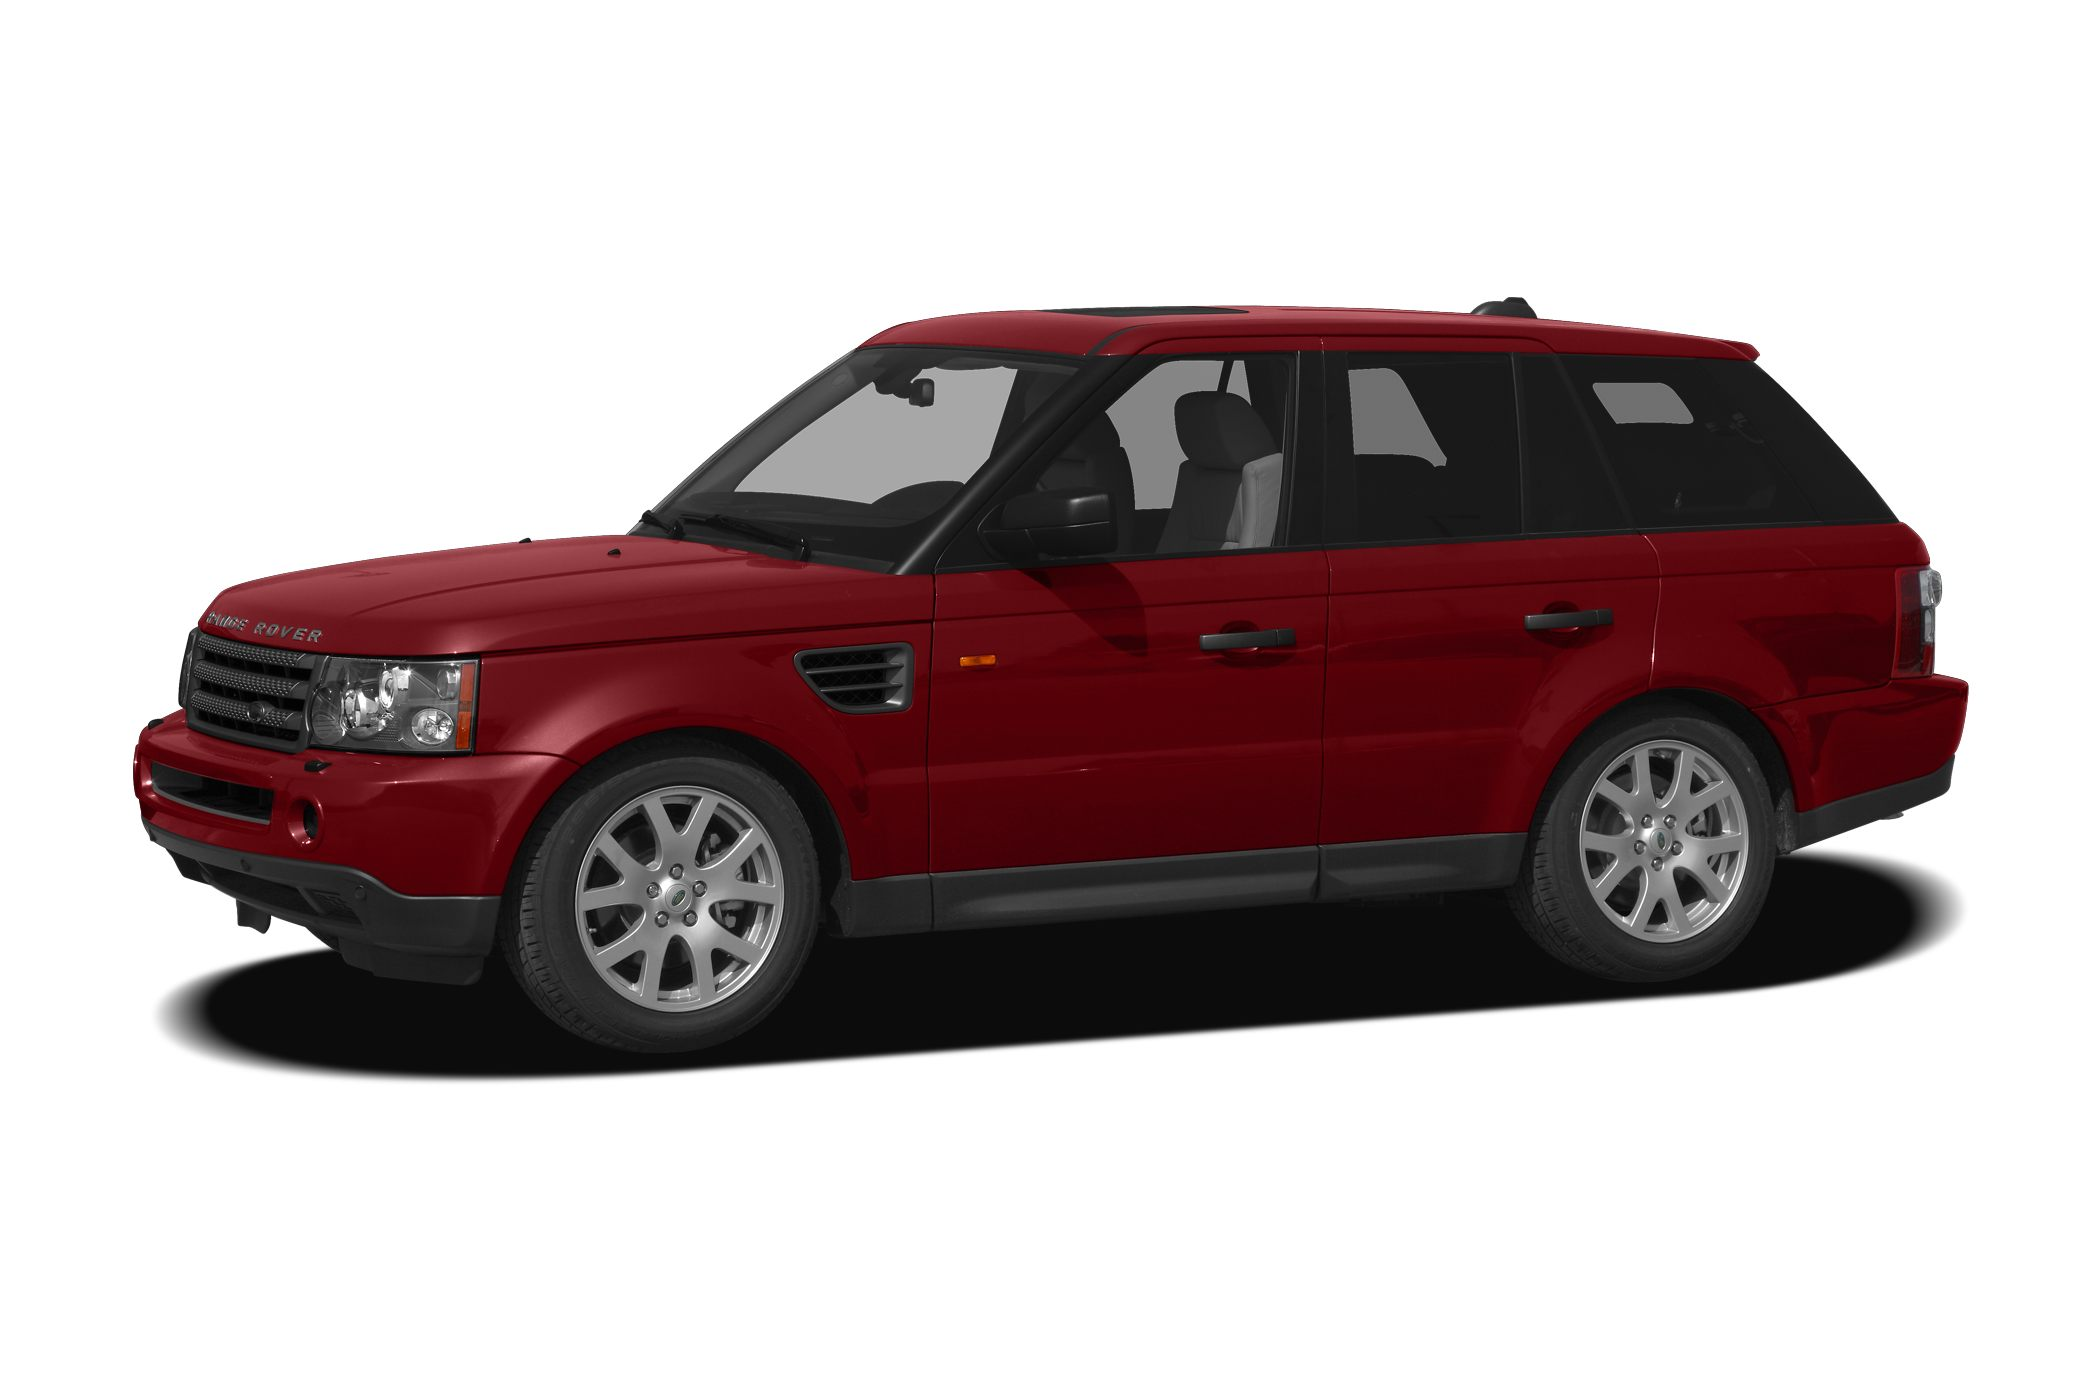 2008 Land Rover Range Rover Sport Specs Safety Rating